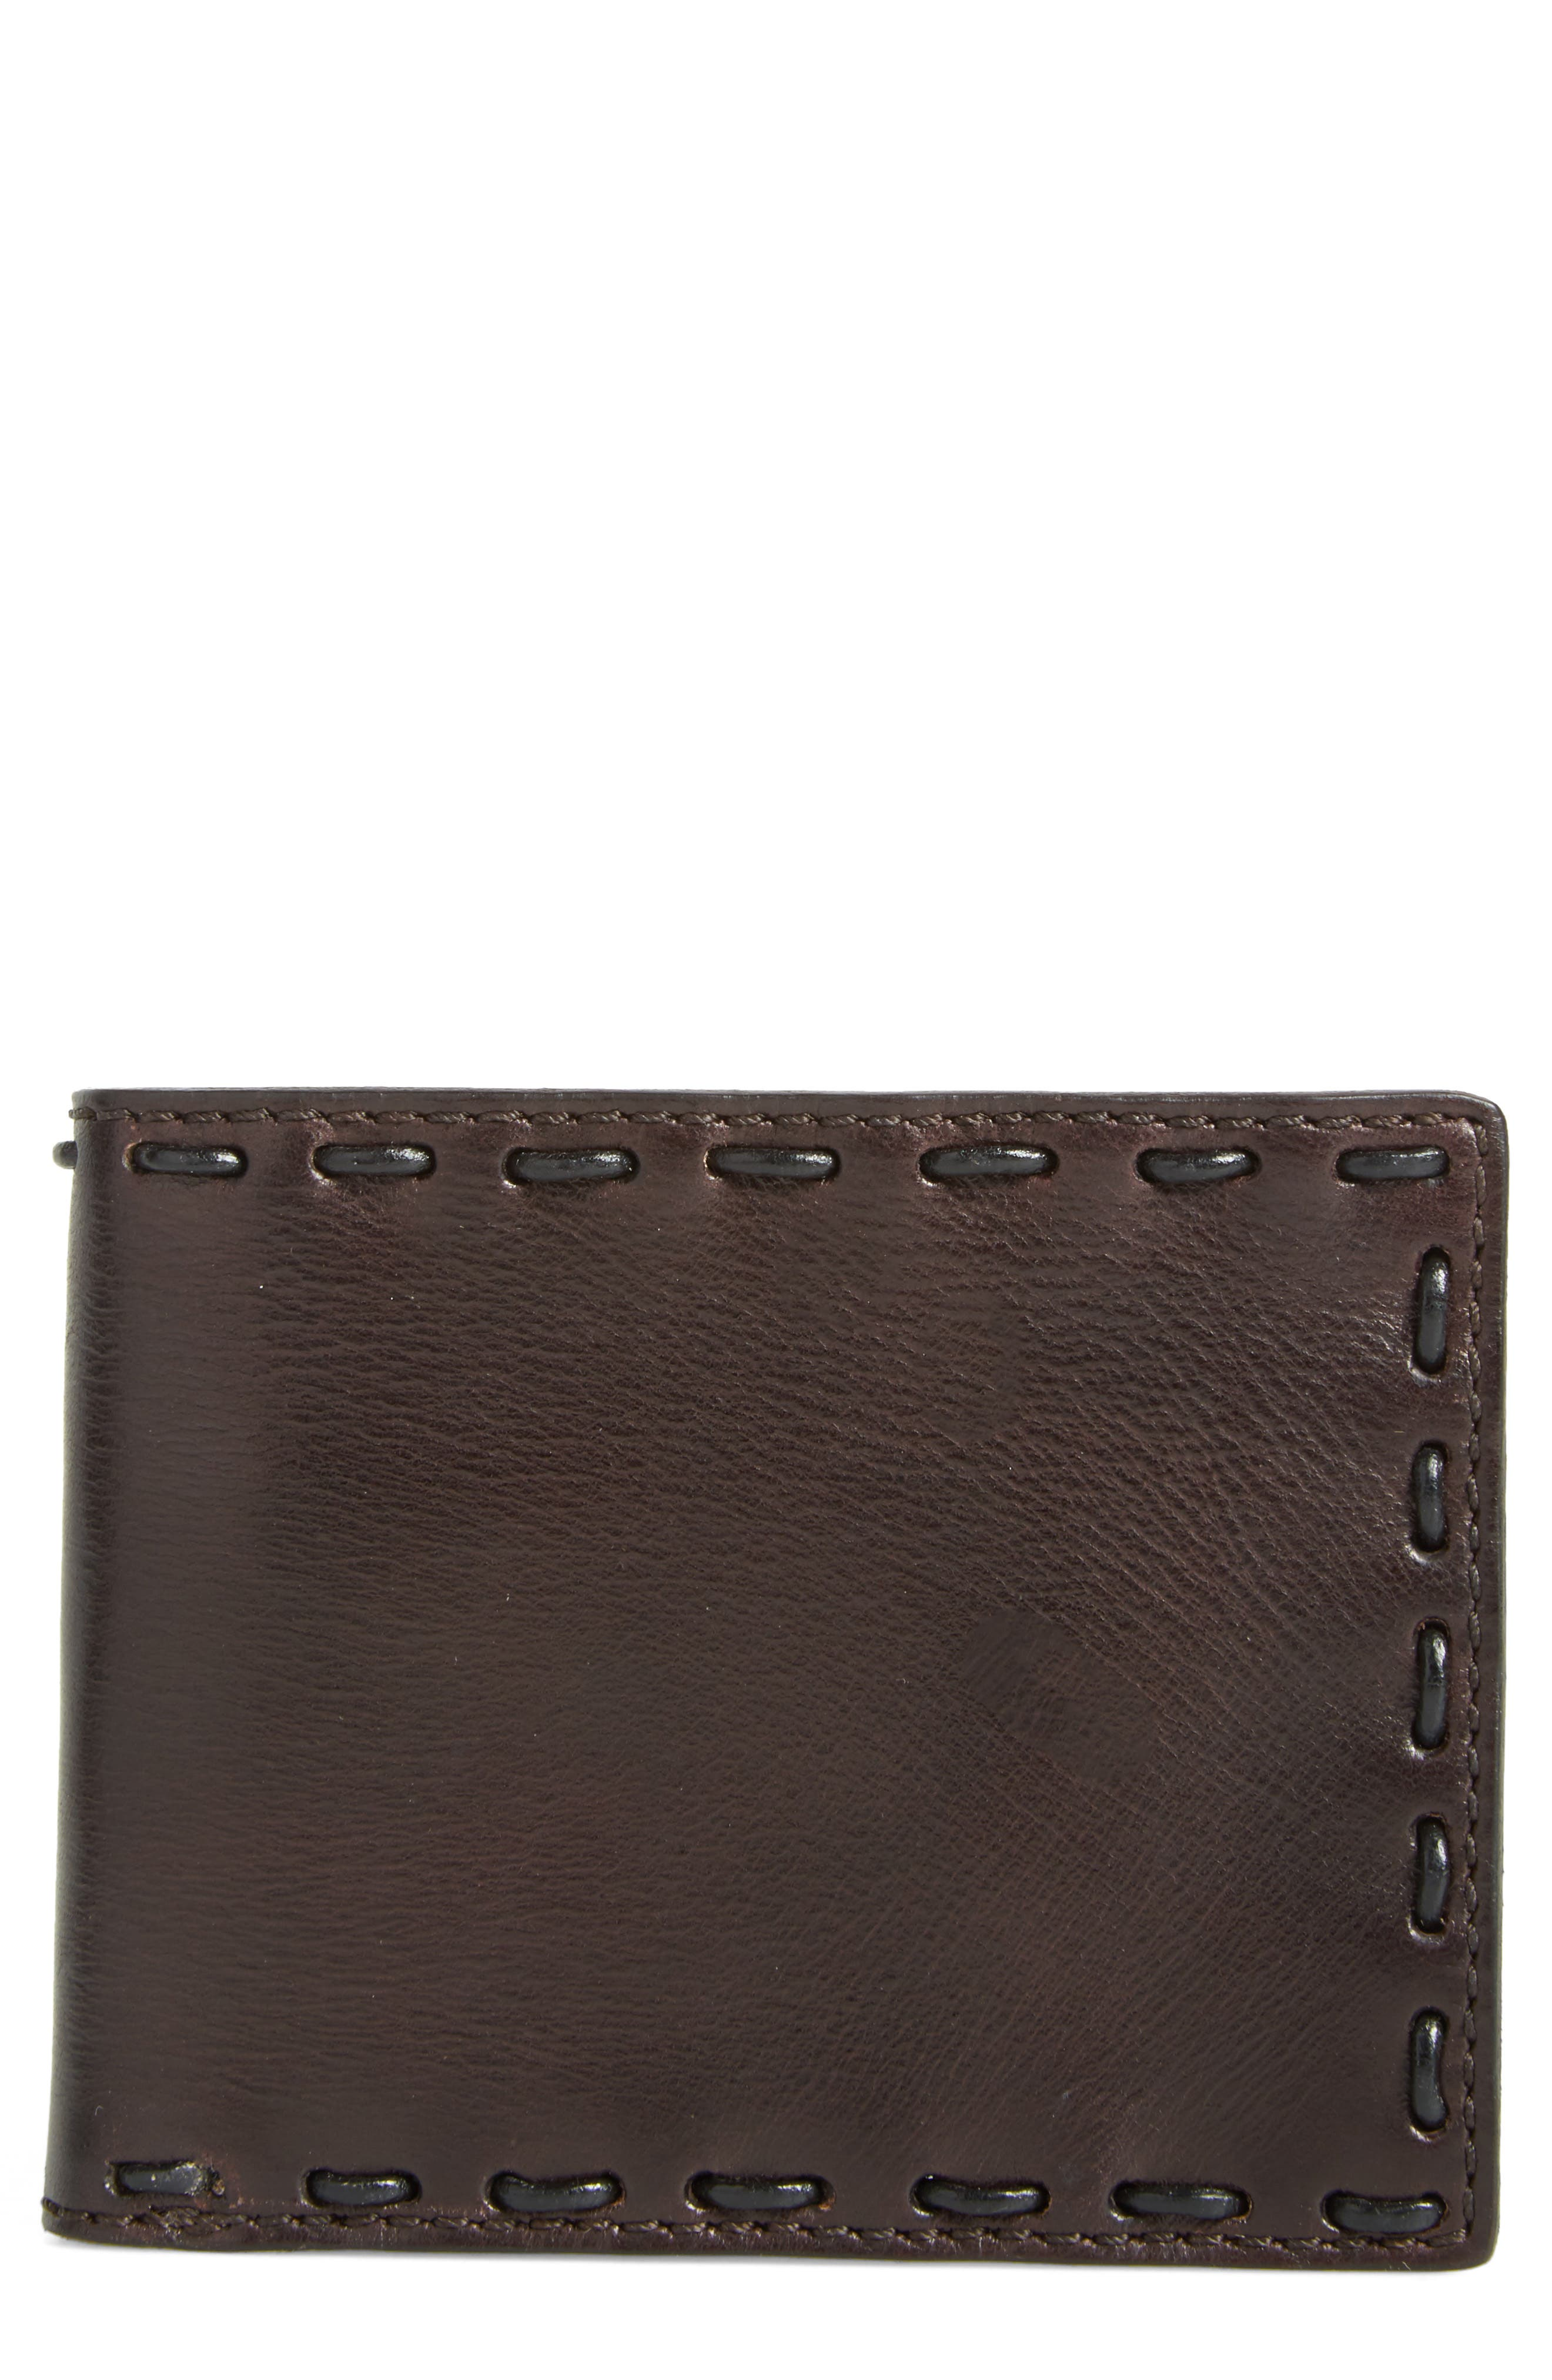 Pickstitch Leather Bifold Wallet,                             Main thumbnail 2, color,